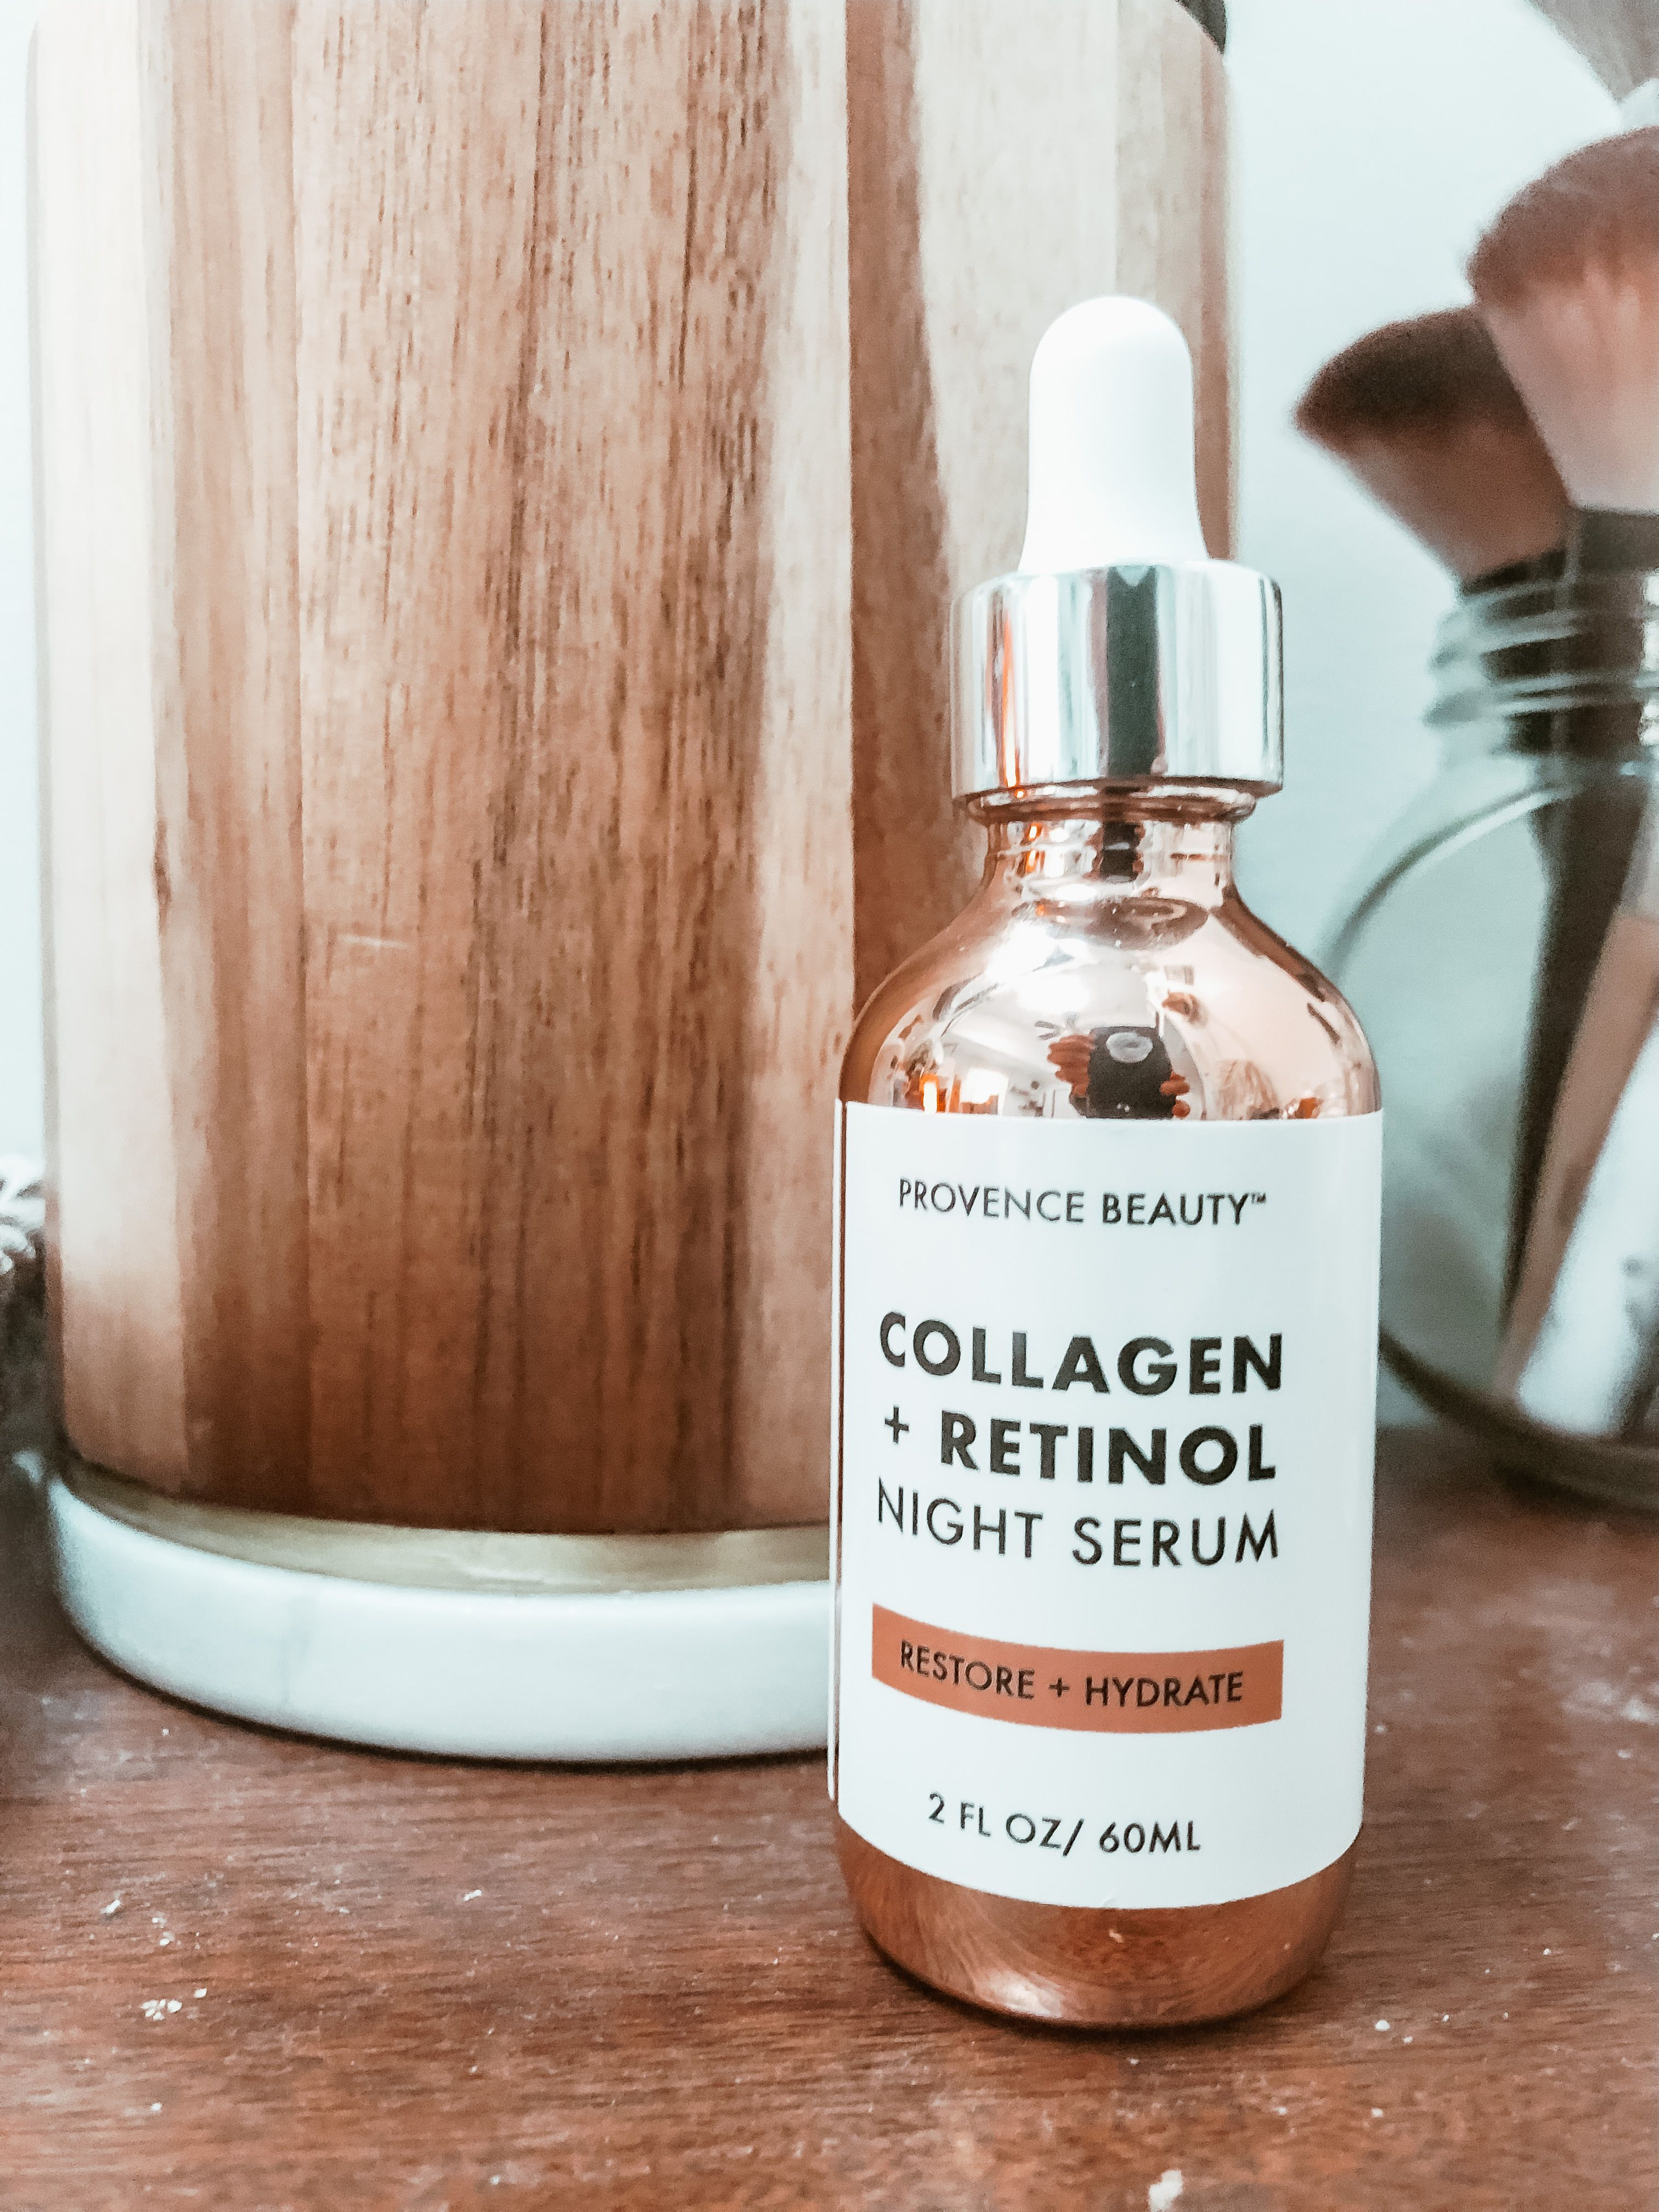 Natural Ingredient Skincare Products That Wont Break The Bank Jillian Staebler In 2020 Skincare Ingredients Skin Care Best Skincare Products